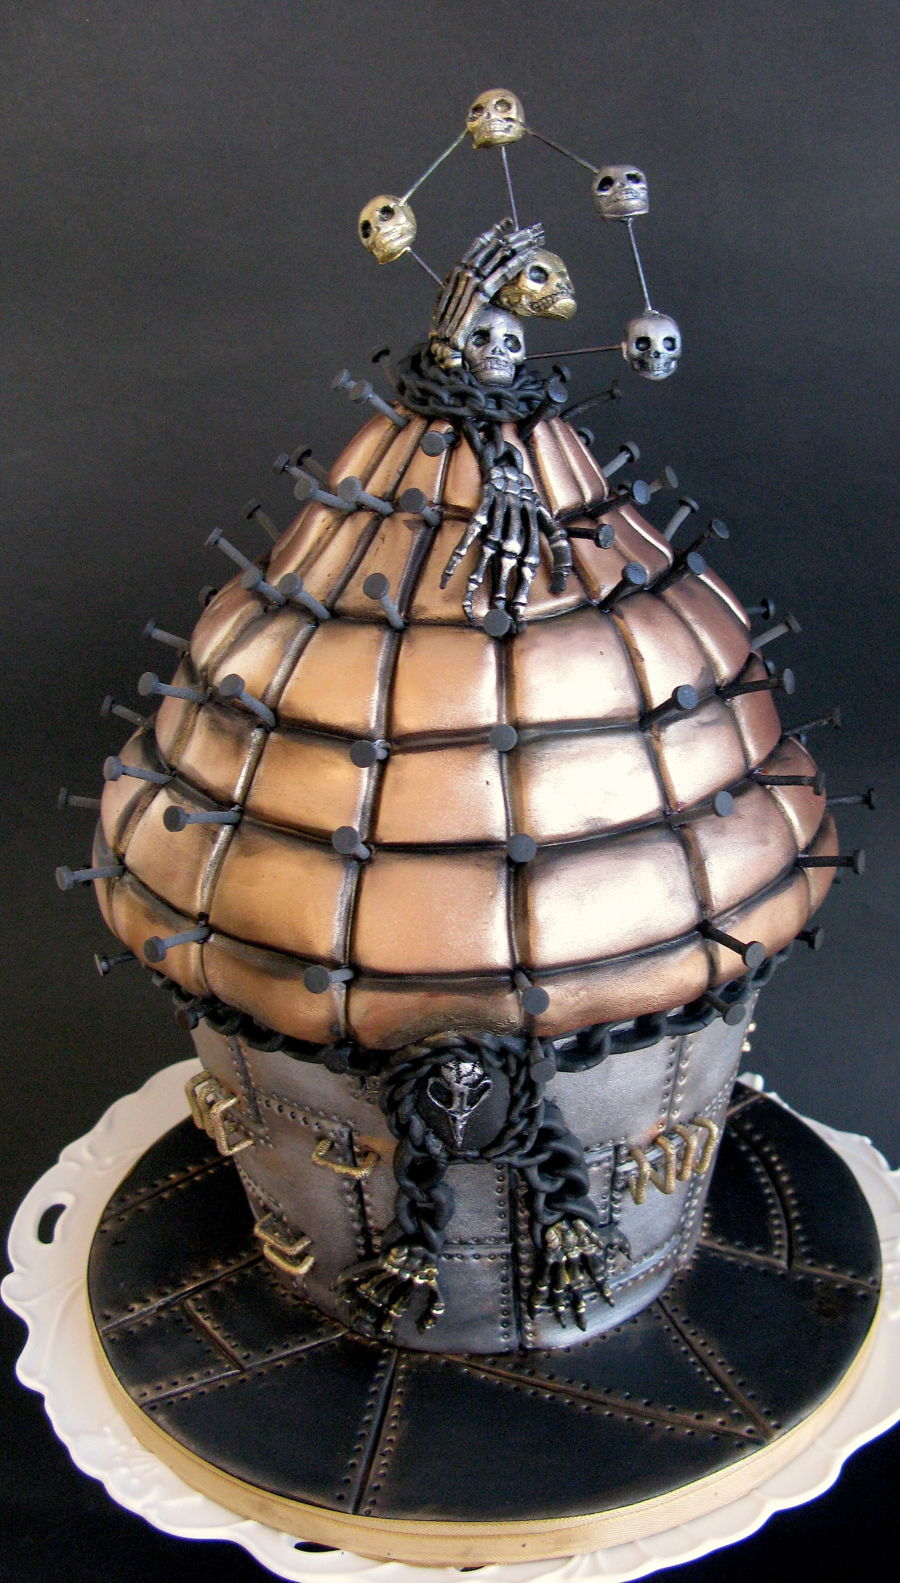 Giant Pinhead Muffin Cake Cakecentral Com